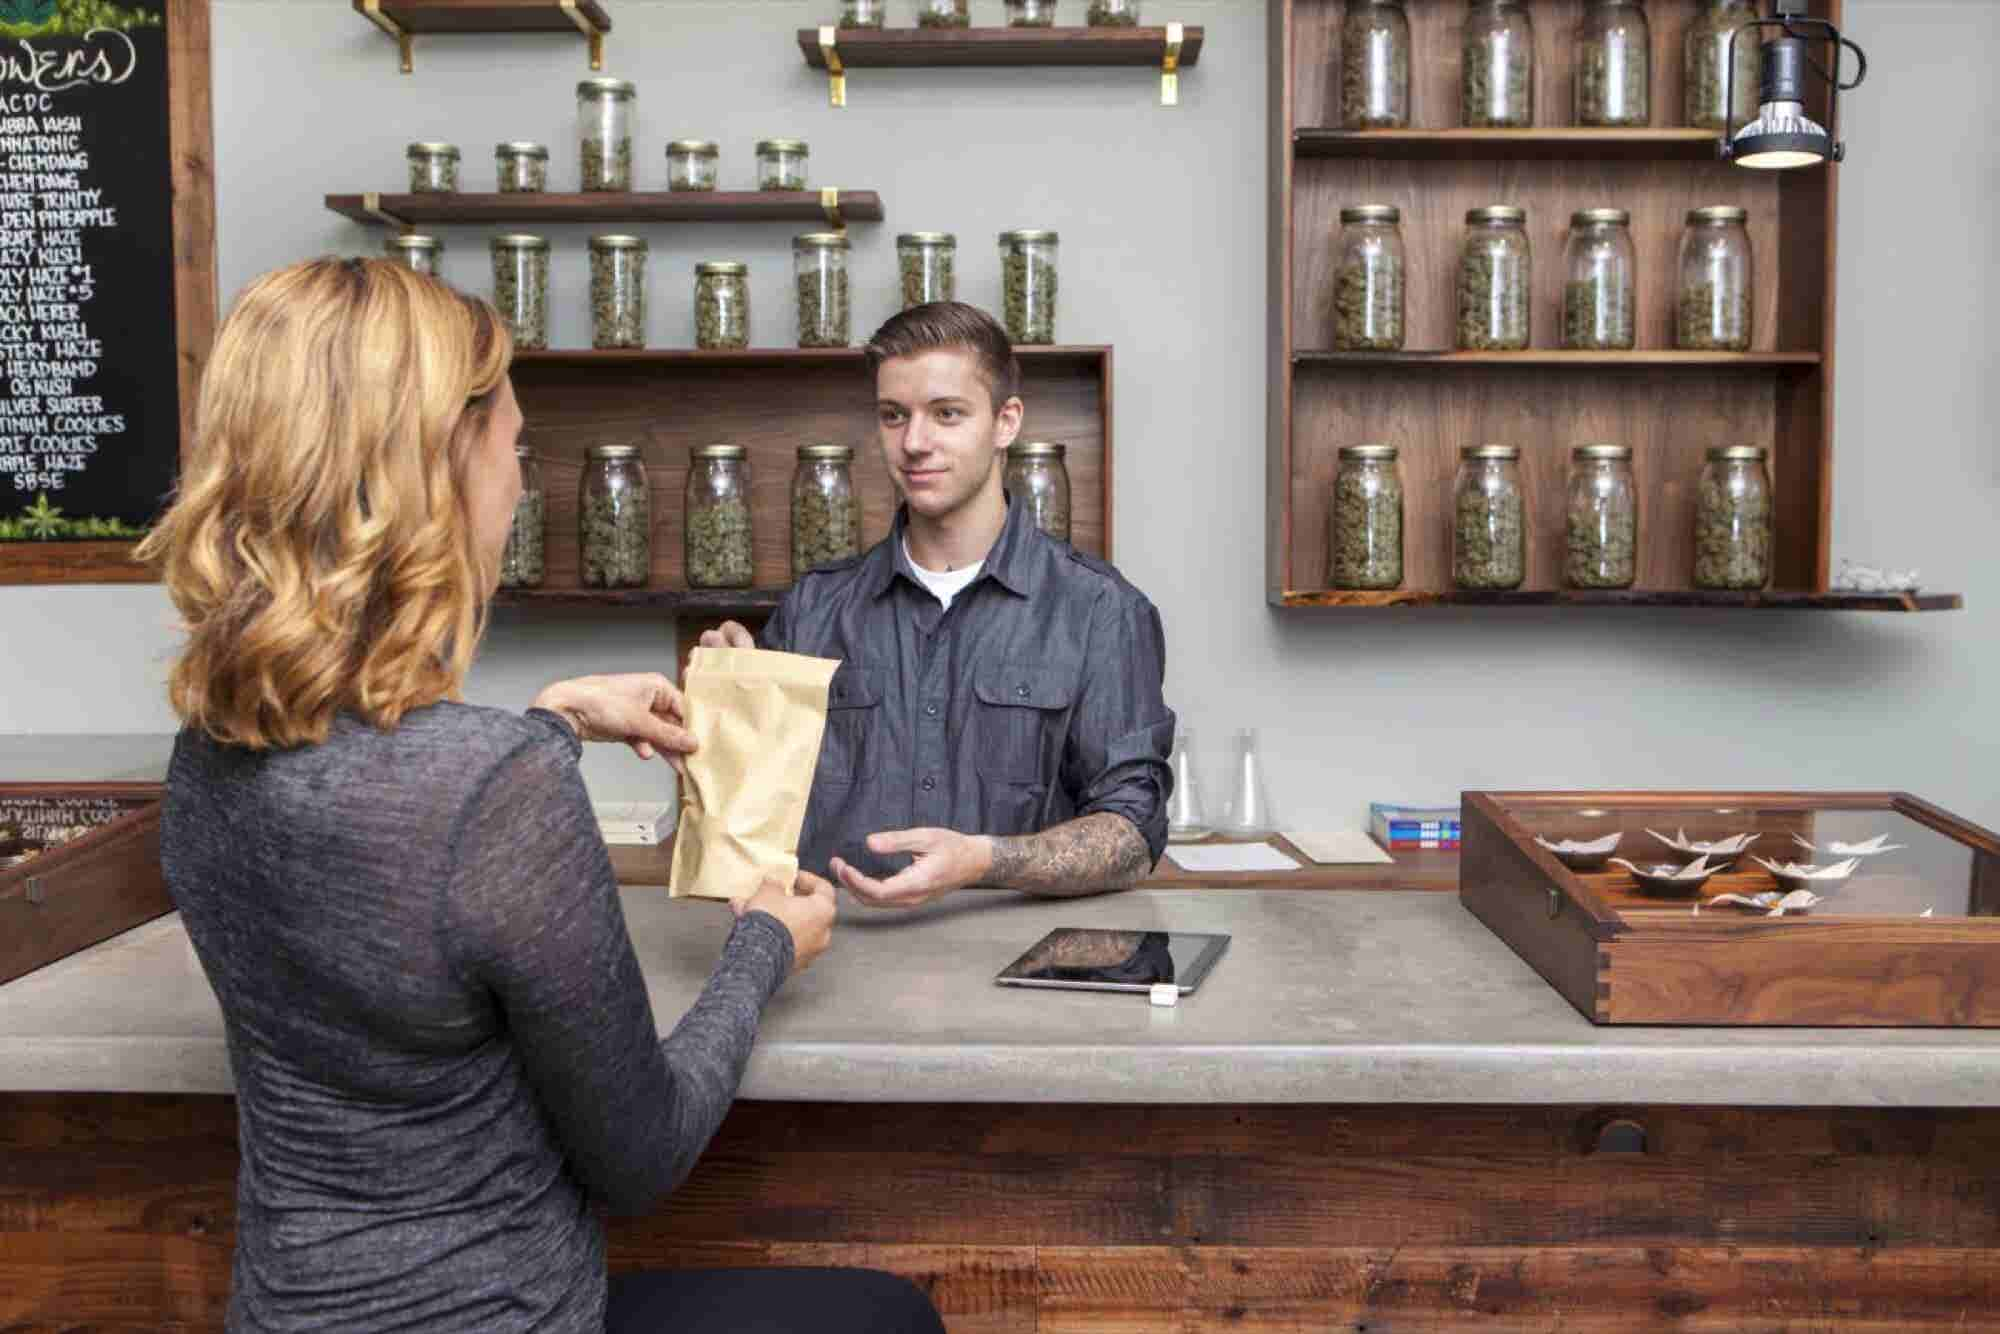 5 Ways to Create a Better Cannabis Customer Experience